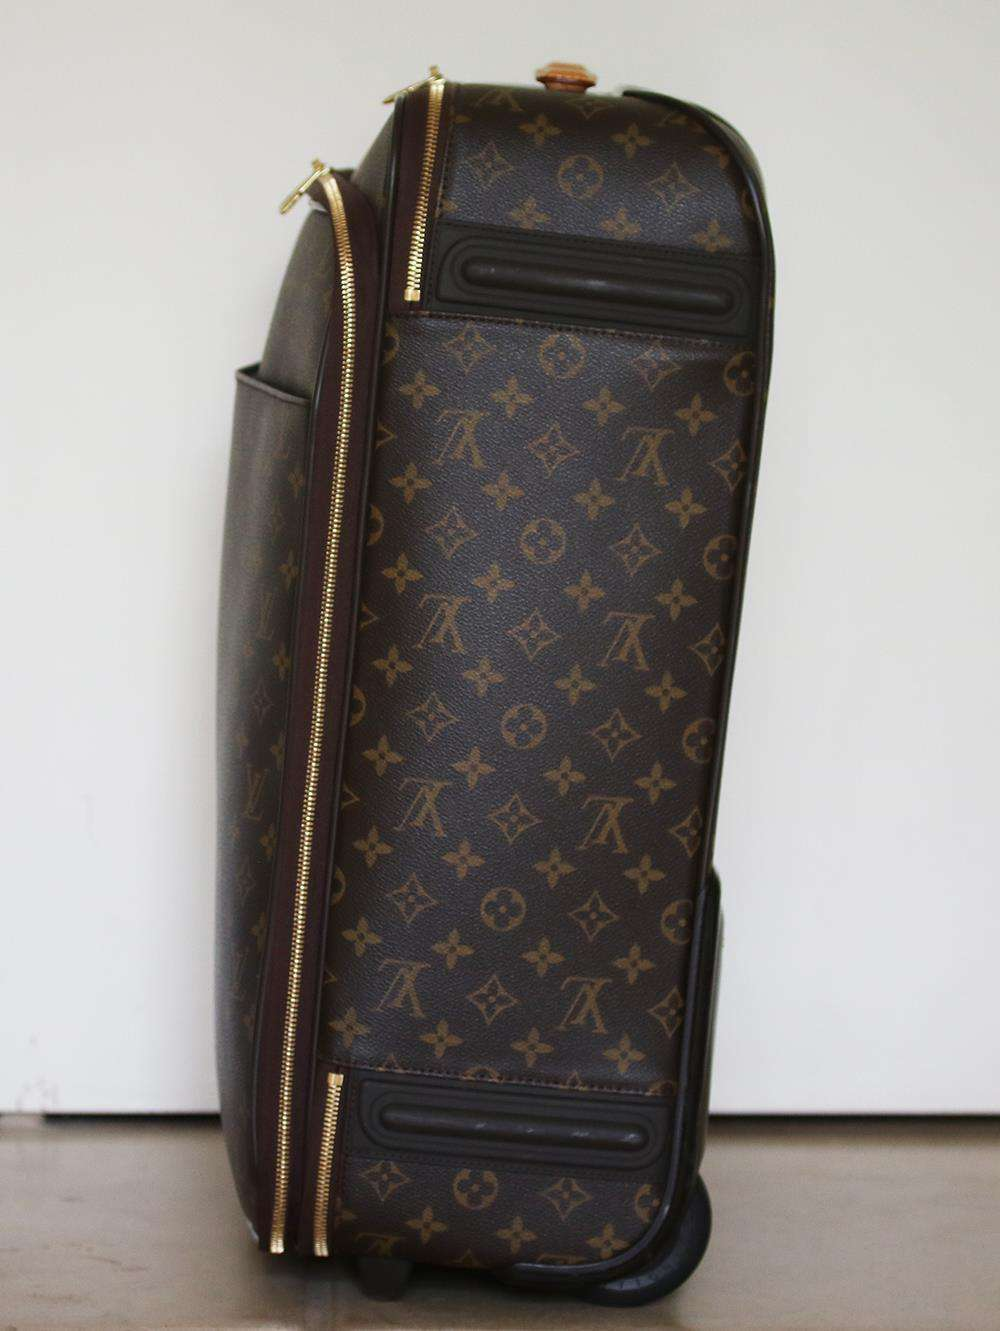 LOUIS VUITTON PERSONALISED PÉGASE LÉGÈRE 55 BUSINESS MONOGRAM CANVAS SUITCASE